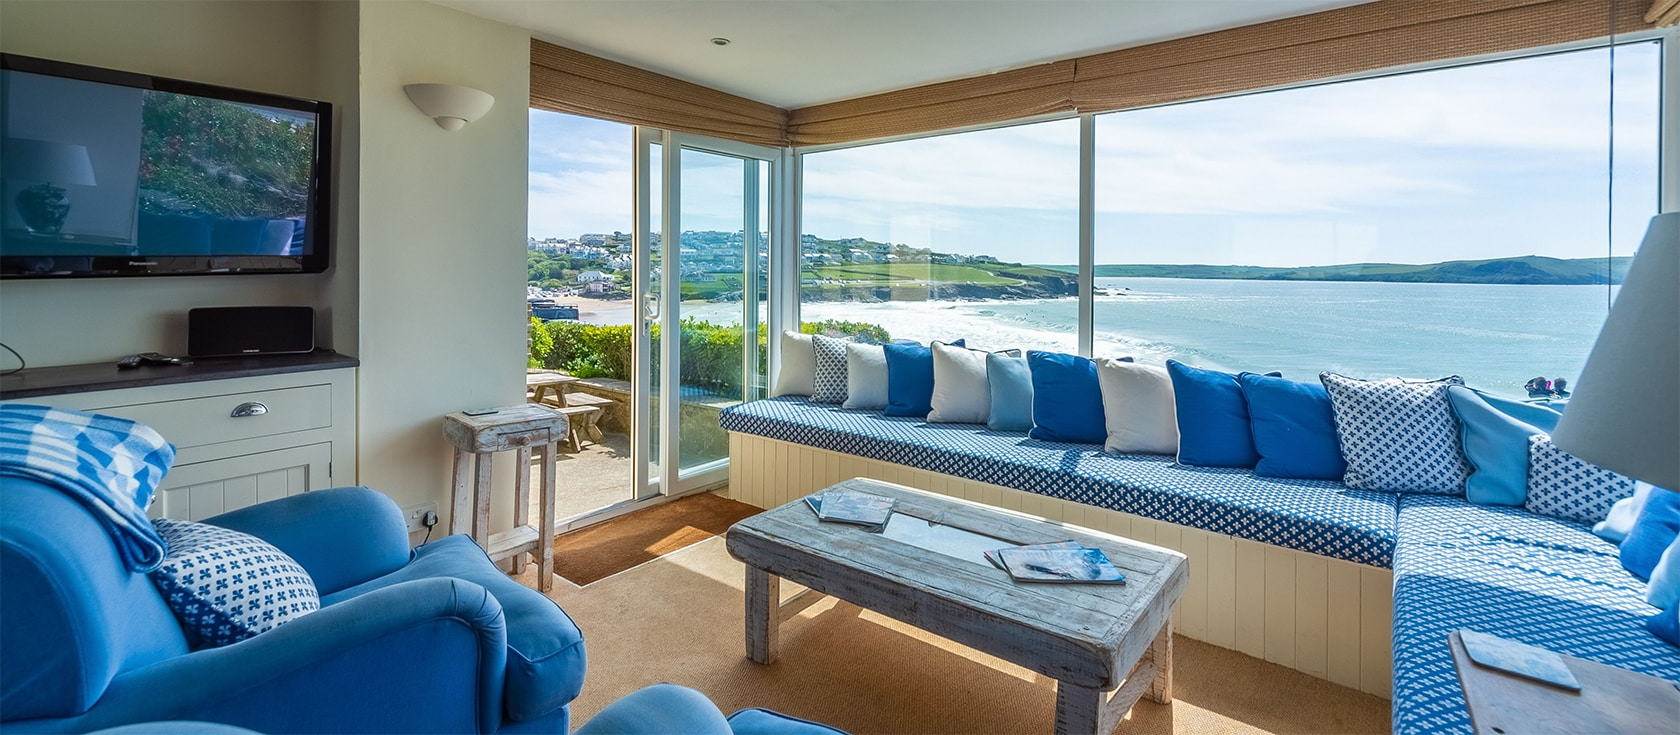 1 Cranfield, Polzeath